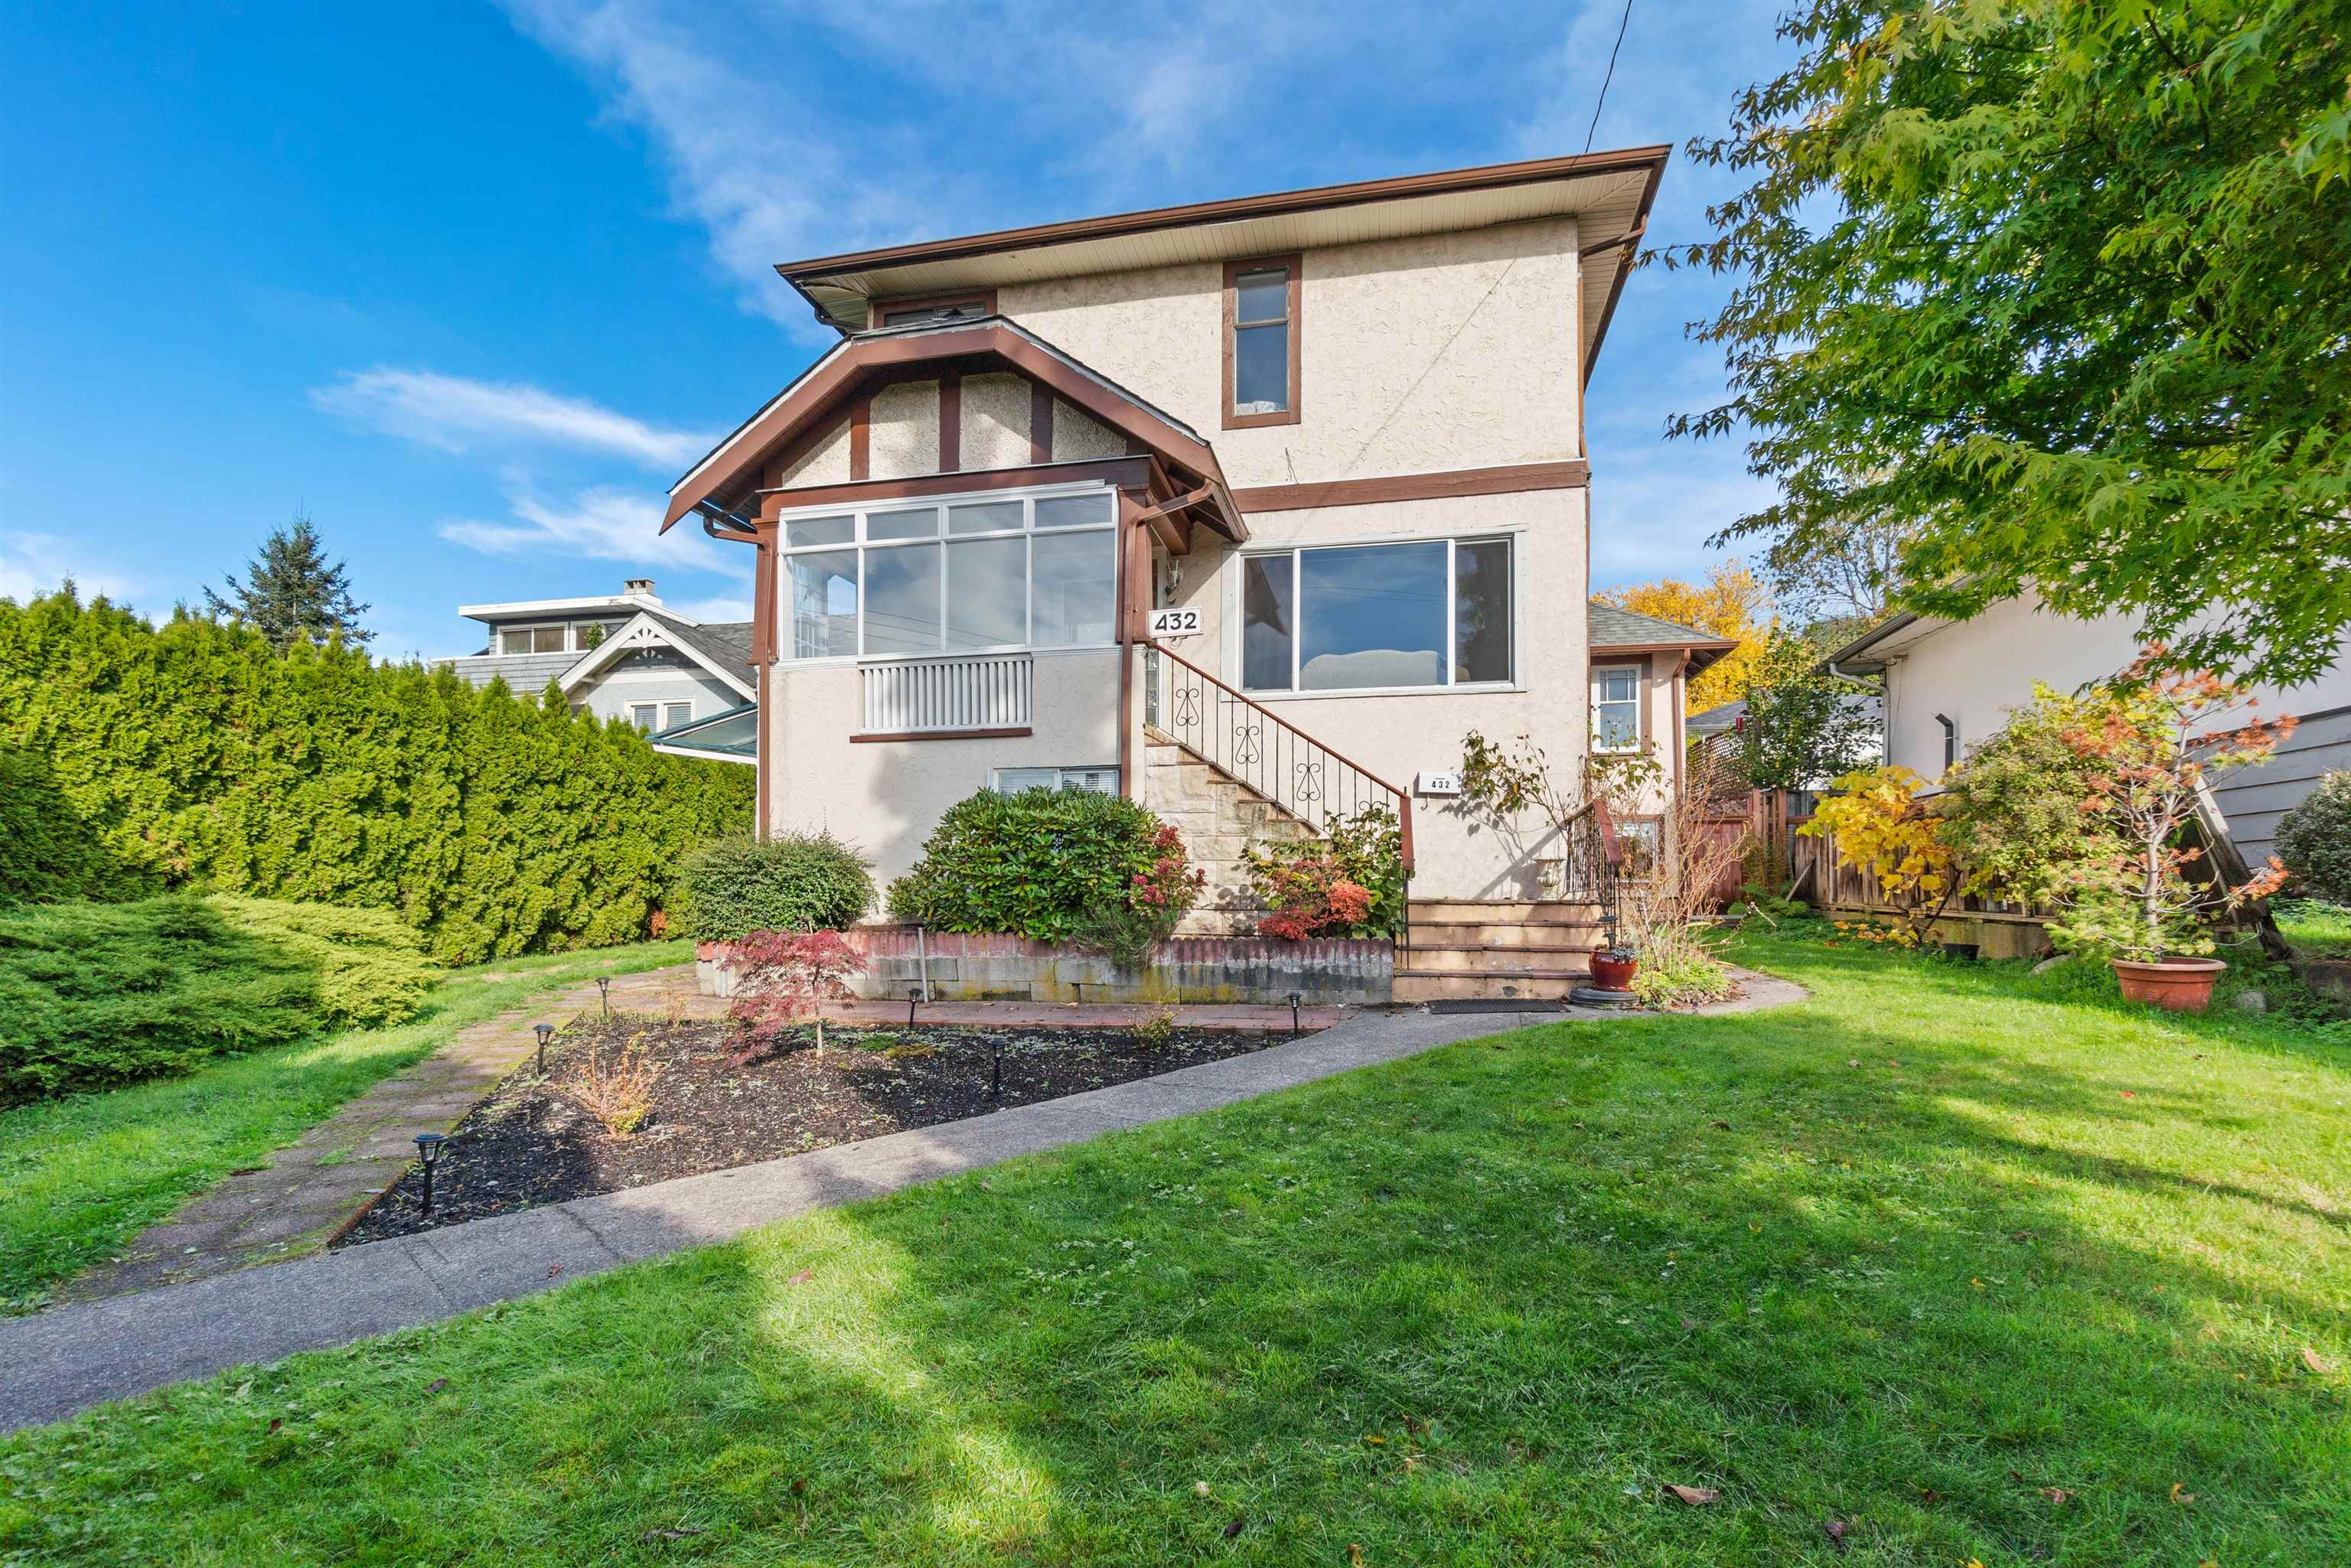 432 E 6TH STREET - Lower Lonsdale House/Single Family for sale, 5 Bedrooms (R2628245)